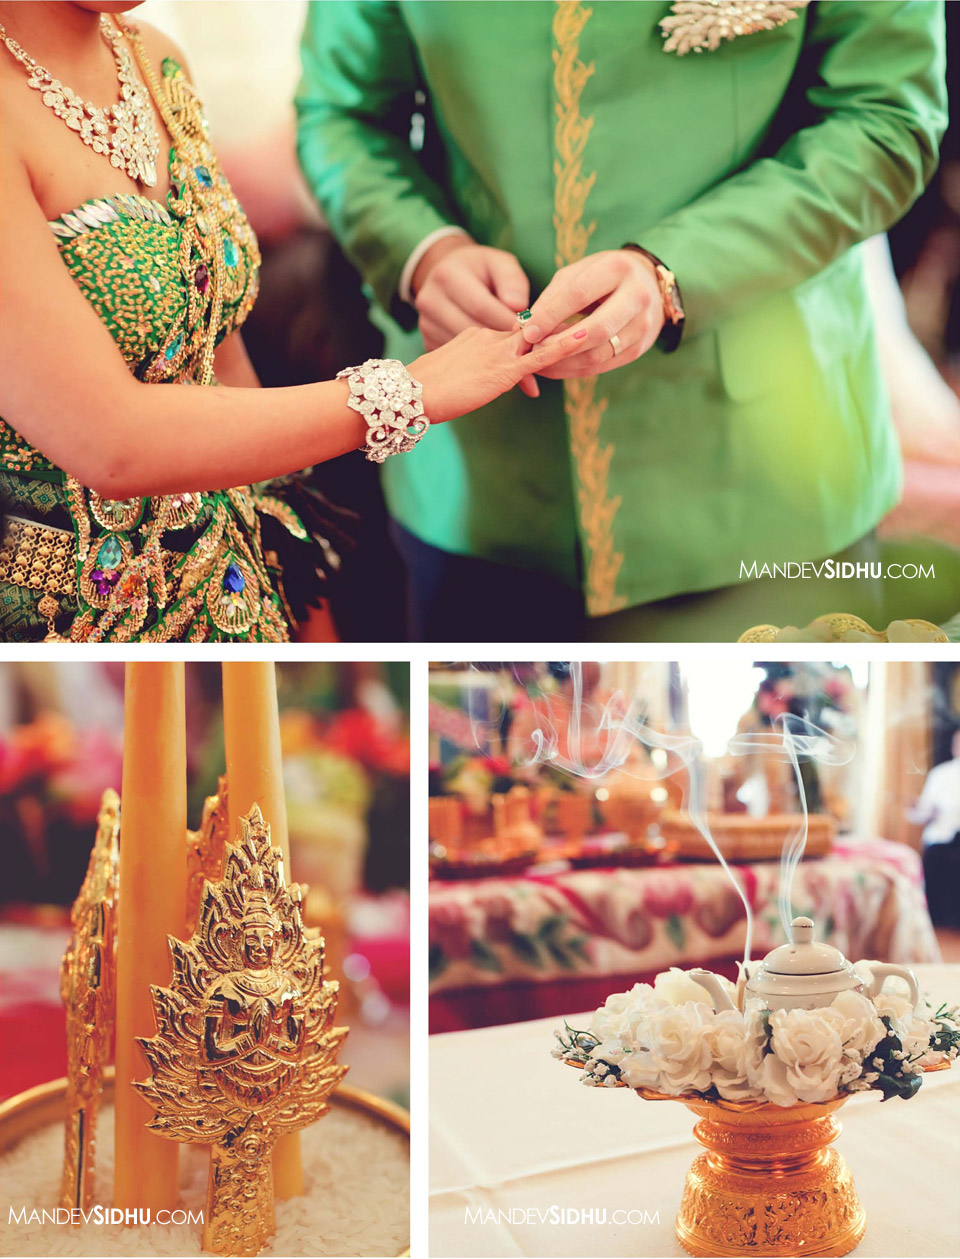 Cambodian bride and groom exchange rings at Khmer wedding ceremony